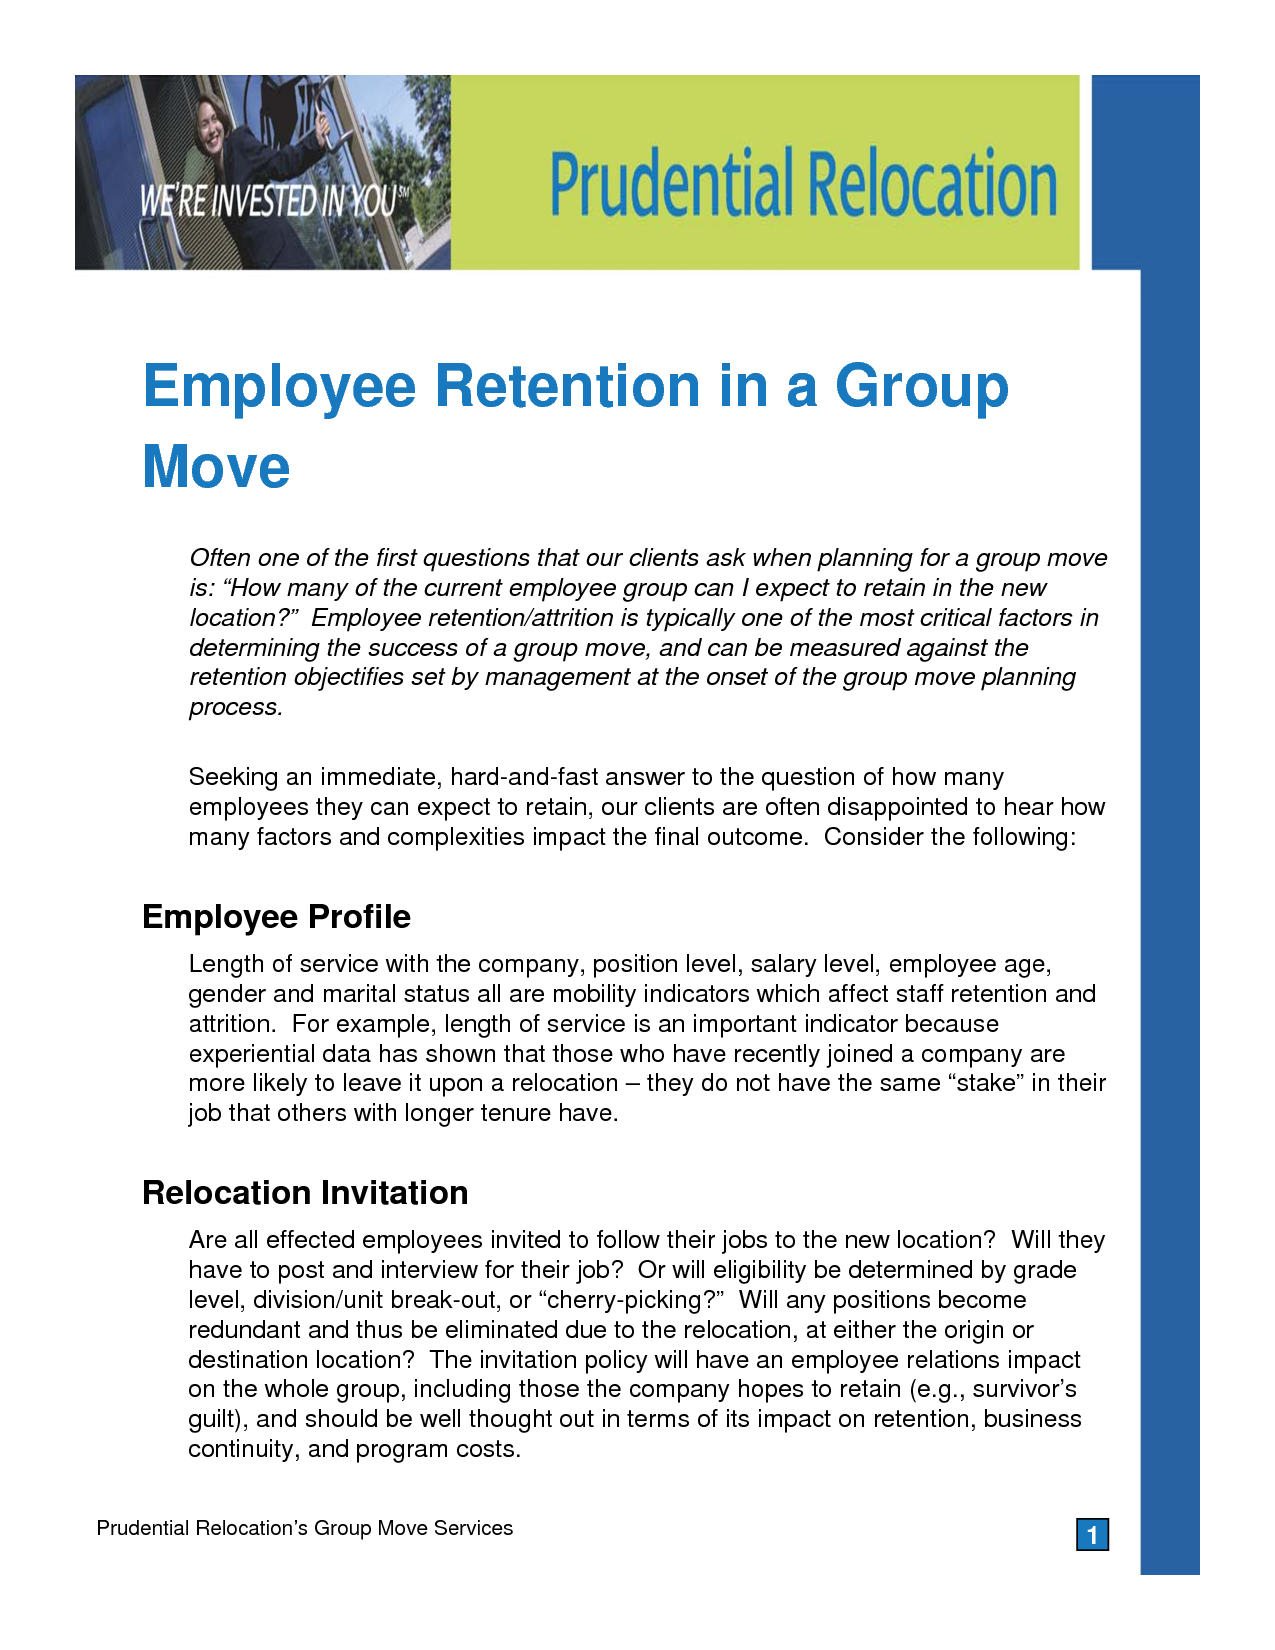 Employee Retention Policy Background checks save companies